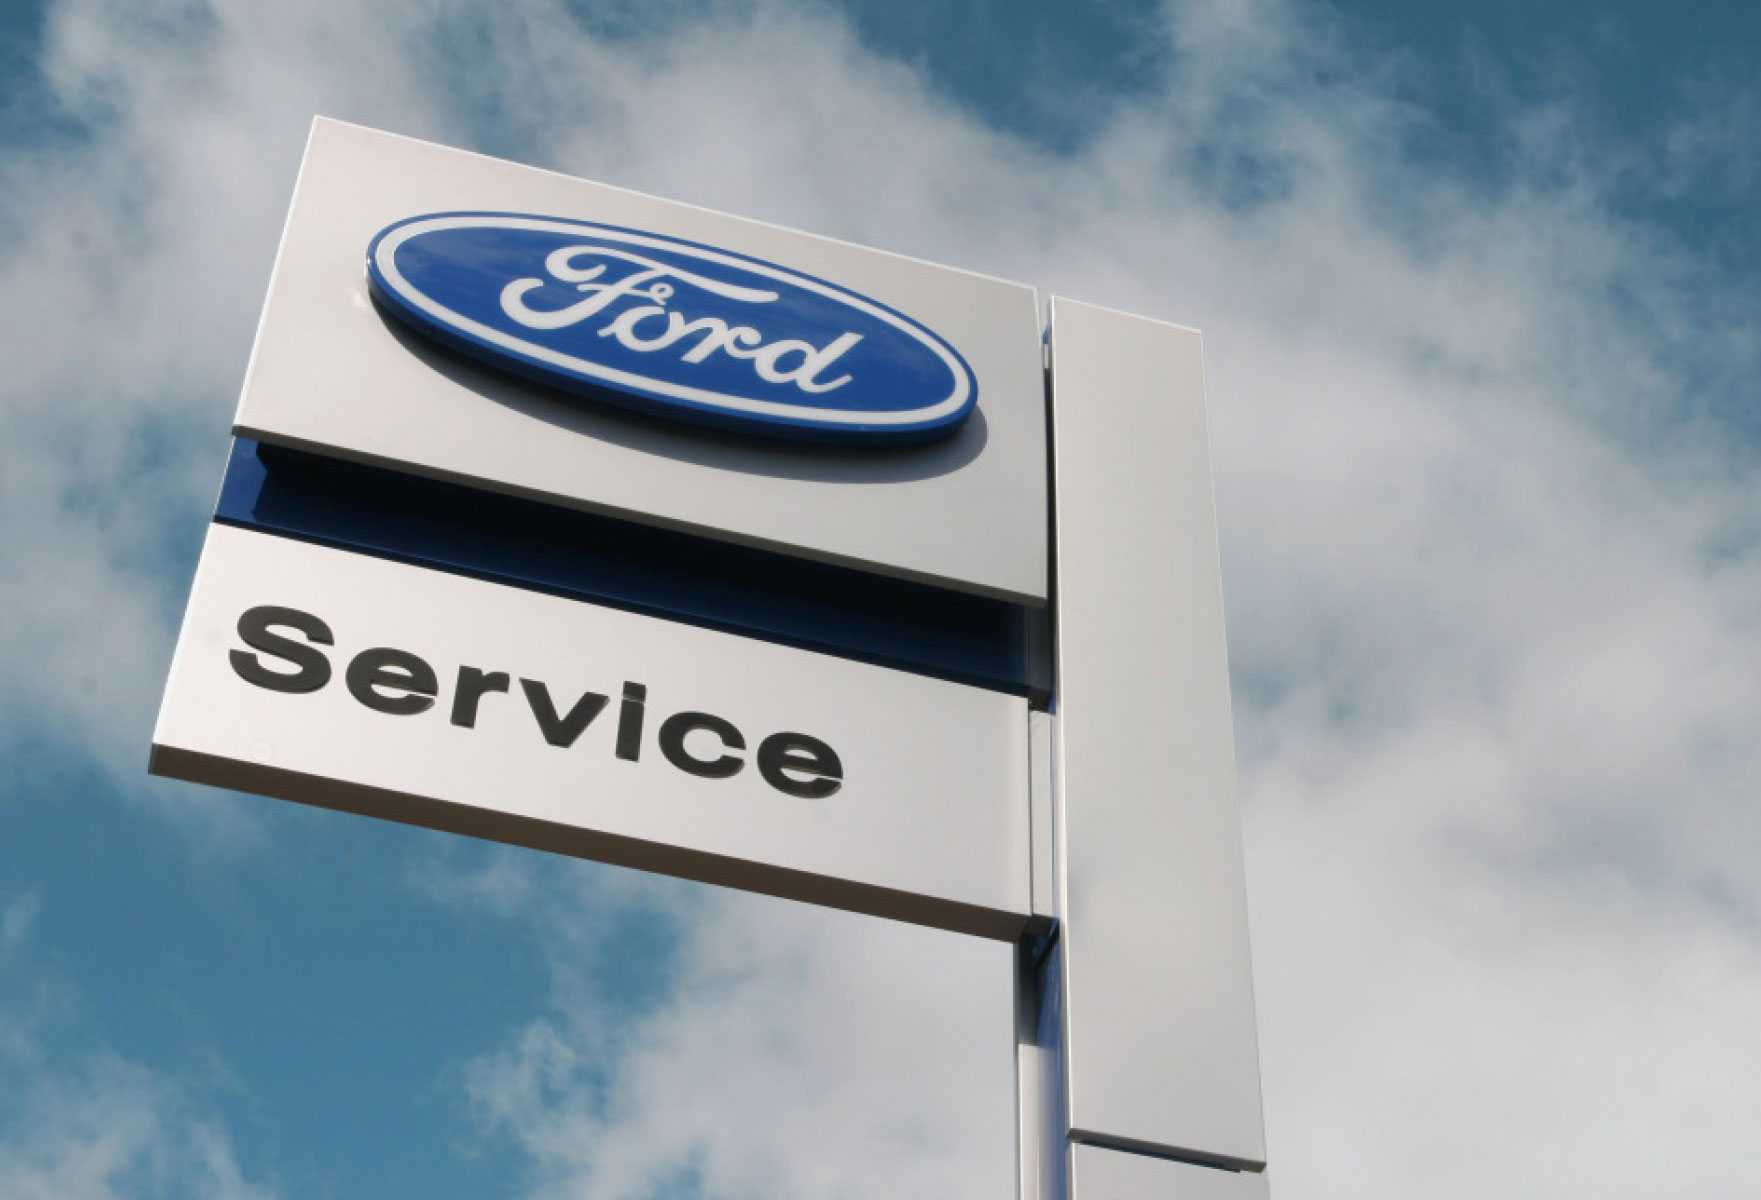 ADS-Ford_Service01